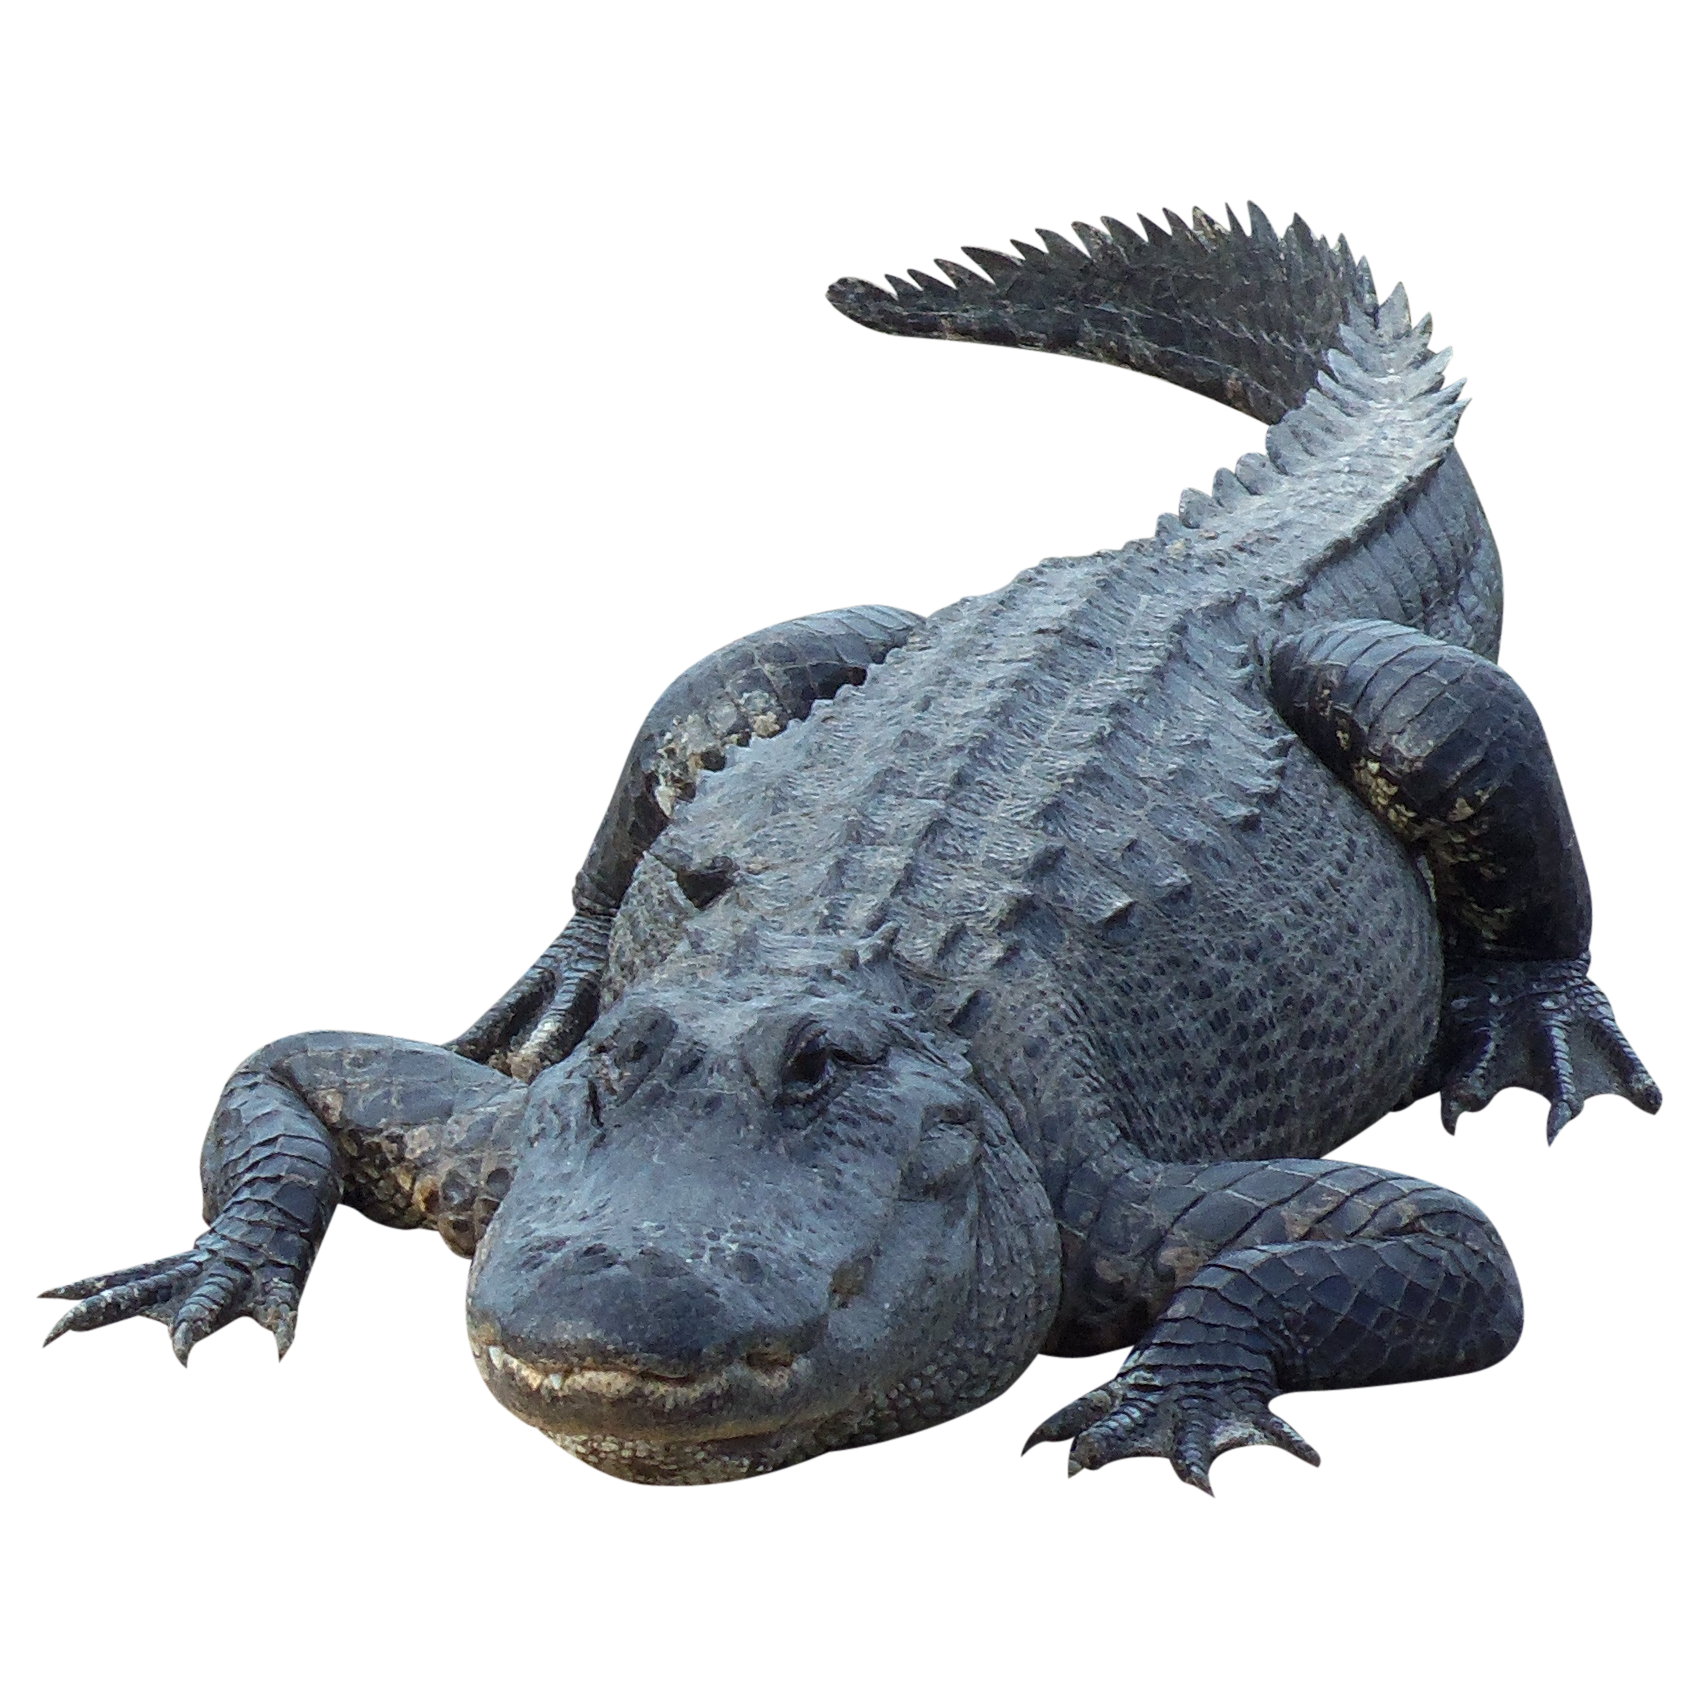 Crocodile PNG